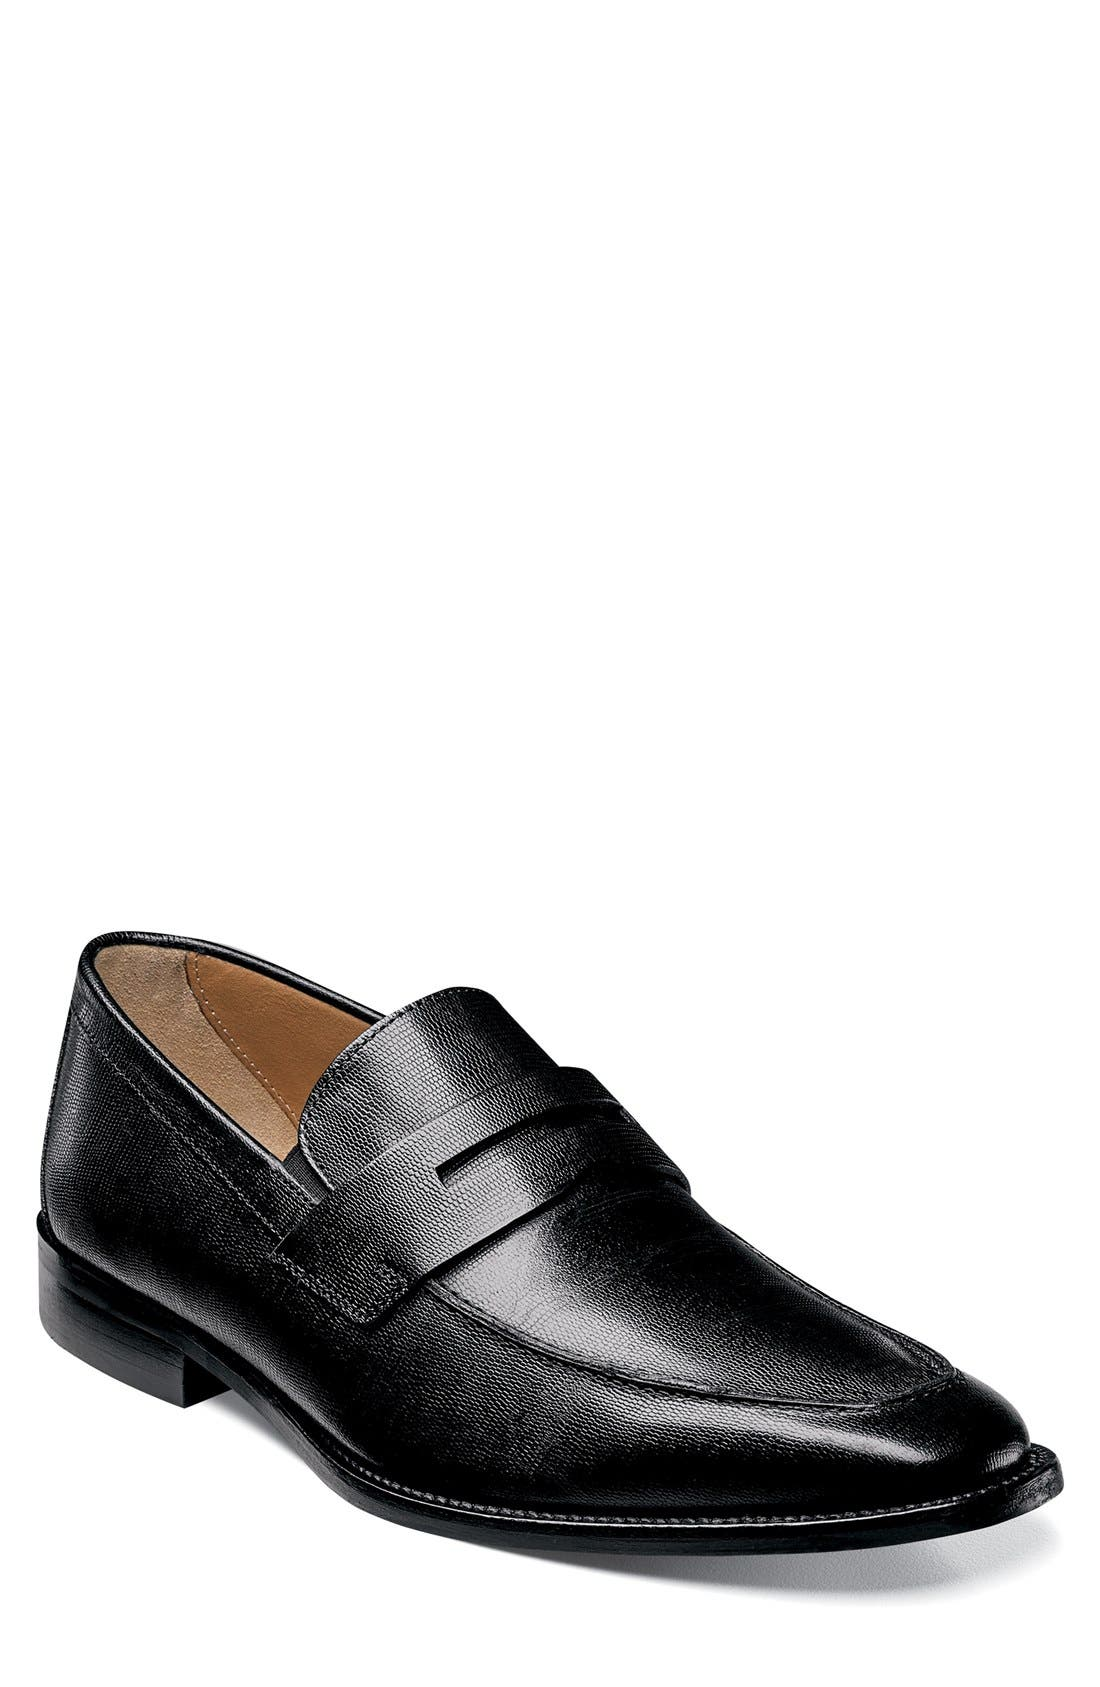 'Sabato' Penny Loafer,                         Main,                         color, 001